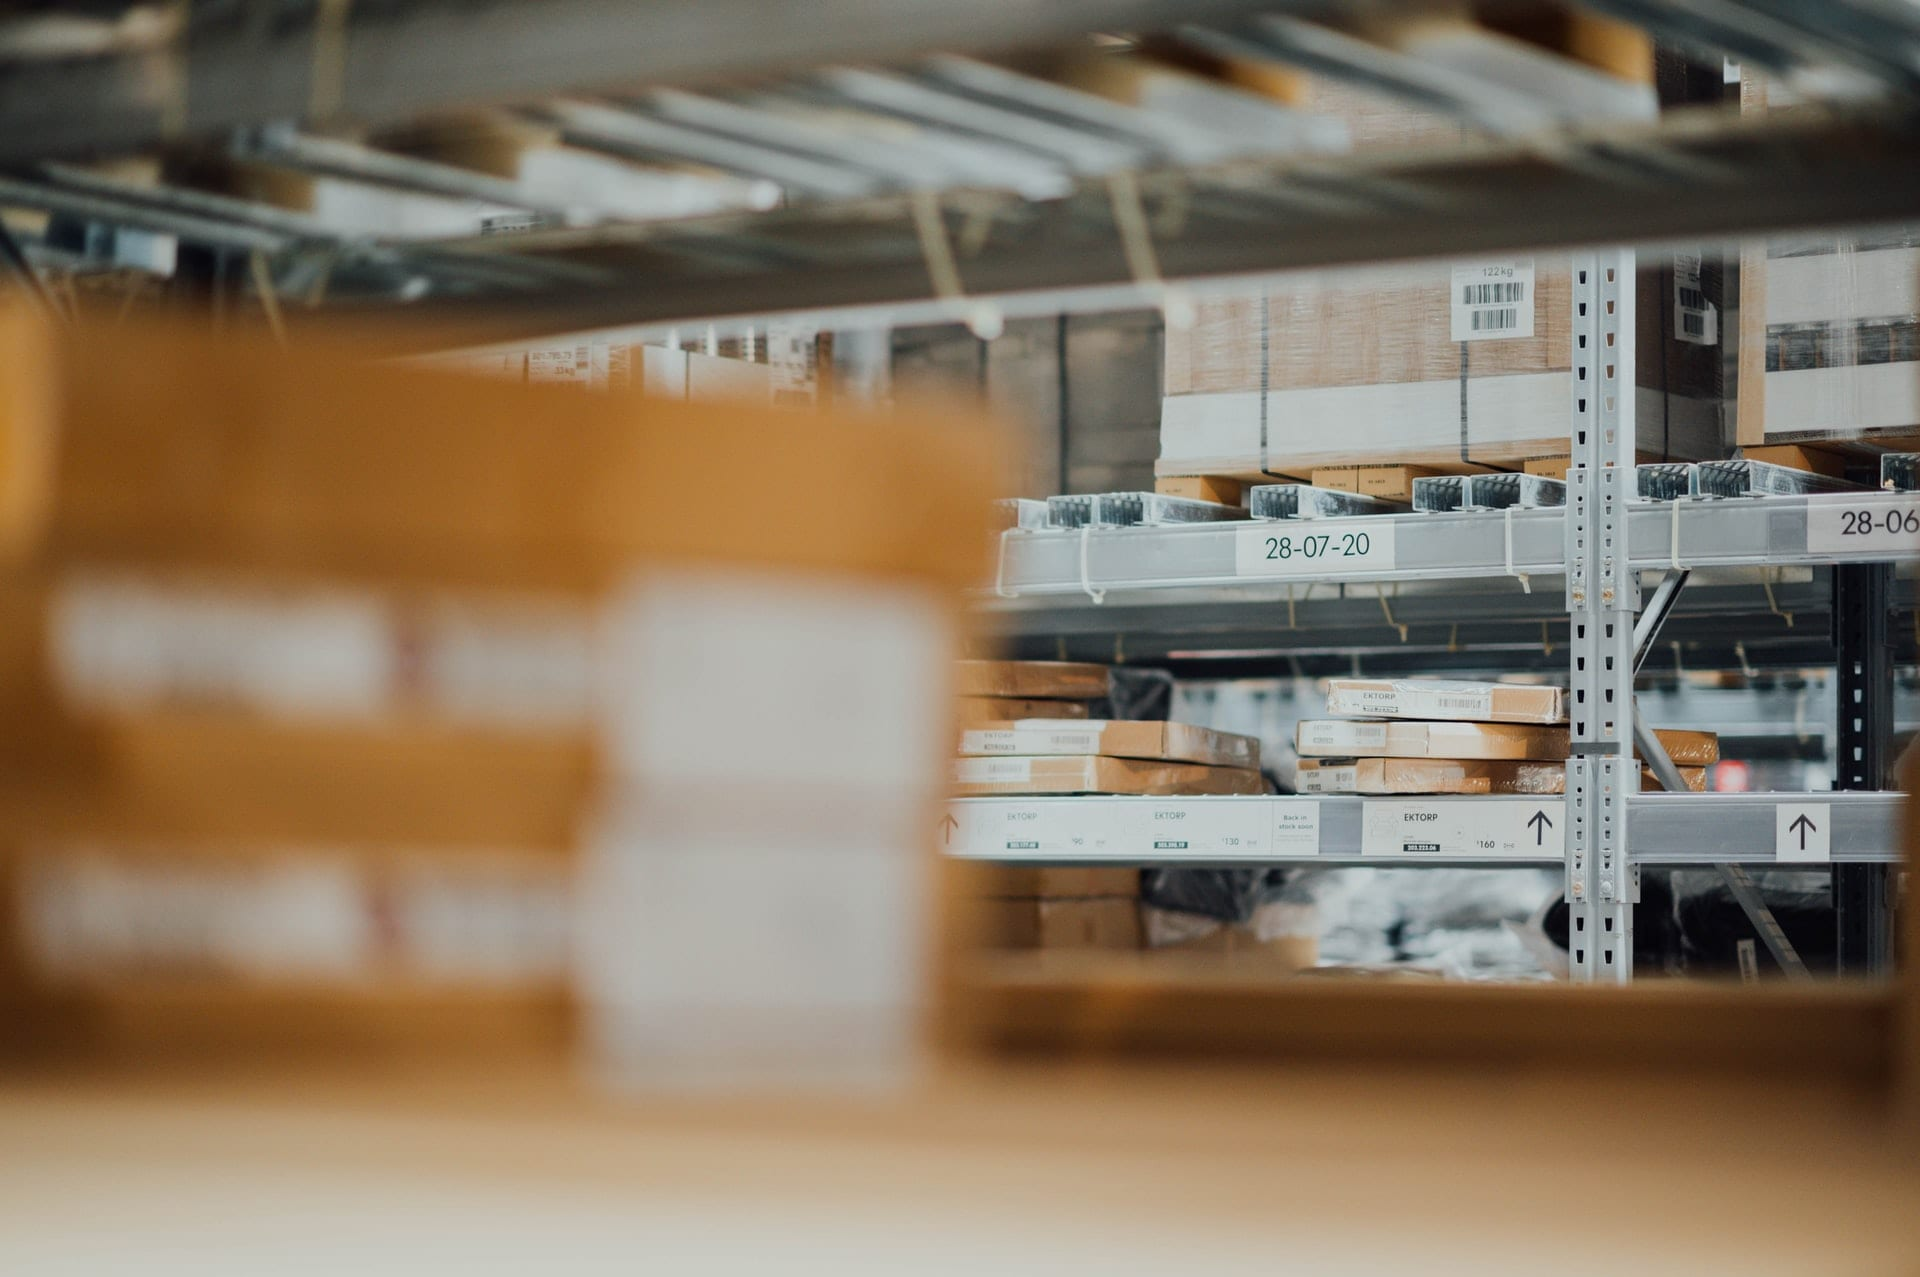 A Complete Guide to Warehouse Abbreviations and Jargon